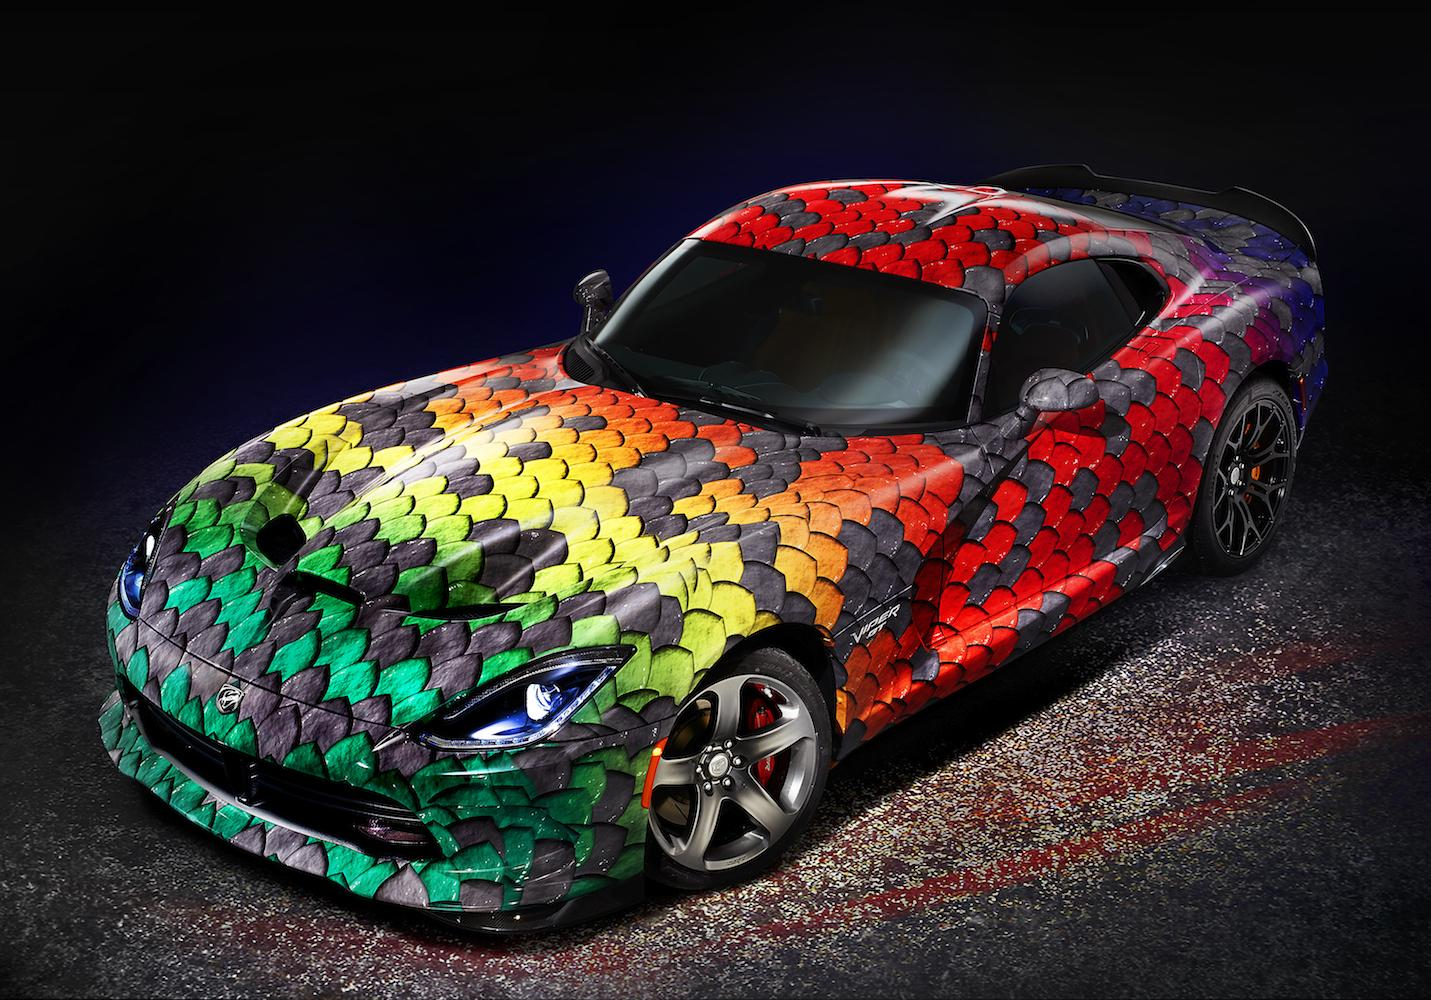 244 Dodge Viper 2015 Srt 10 Wallpaper 8 additionally Mike Gandias Sick Dodge Viper Changing The Game further 1968 DODGE CHARGER CUSTOM 2 DOOR HARDTOP 116009 in addition 47300 further Dodge Srt Viper Customization Program. on charger with viper engine